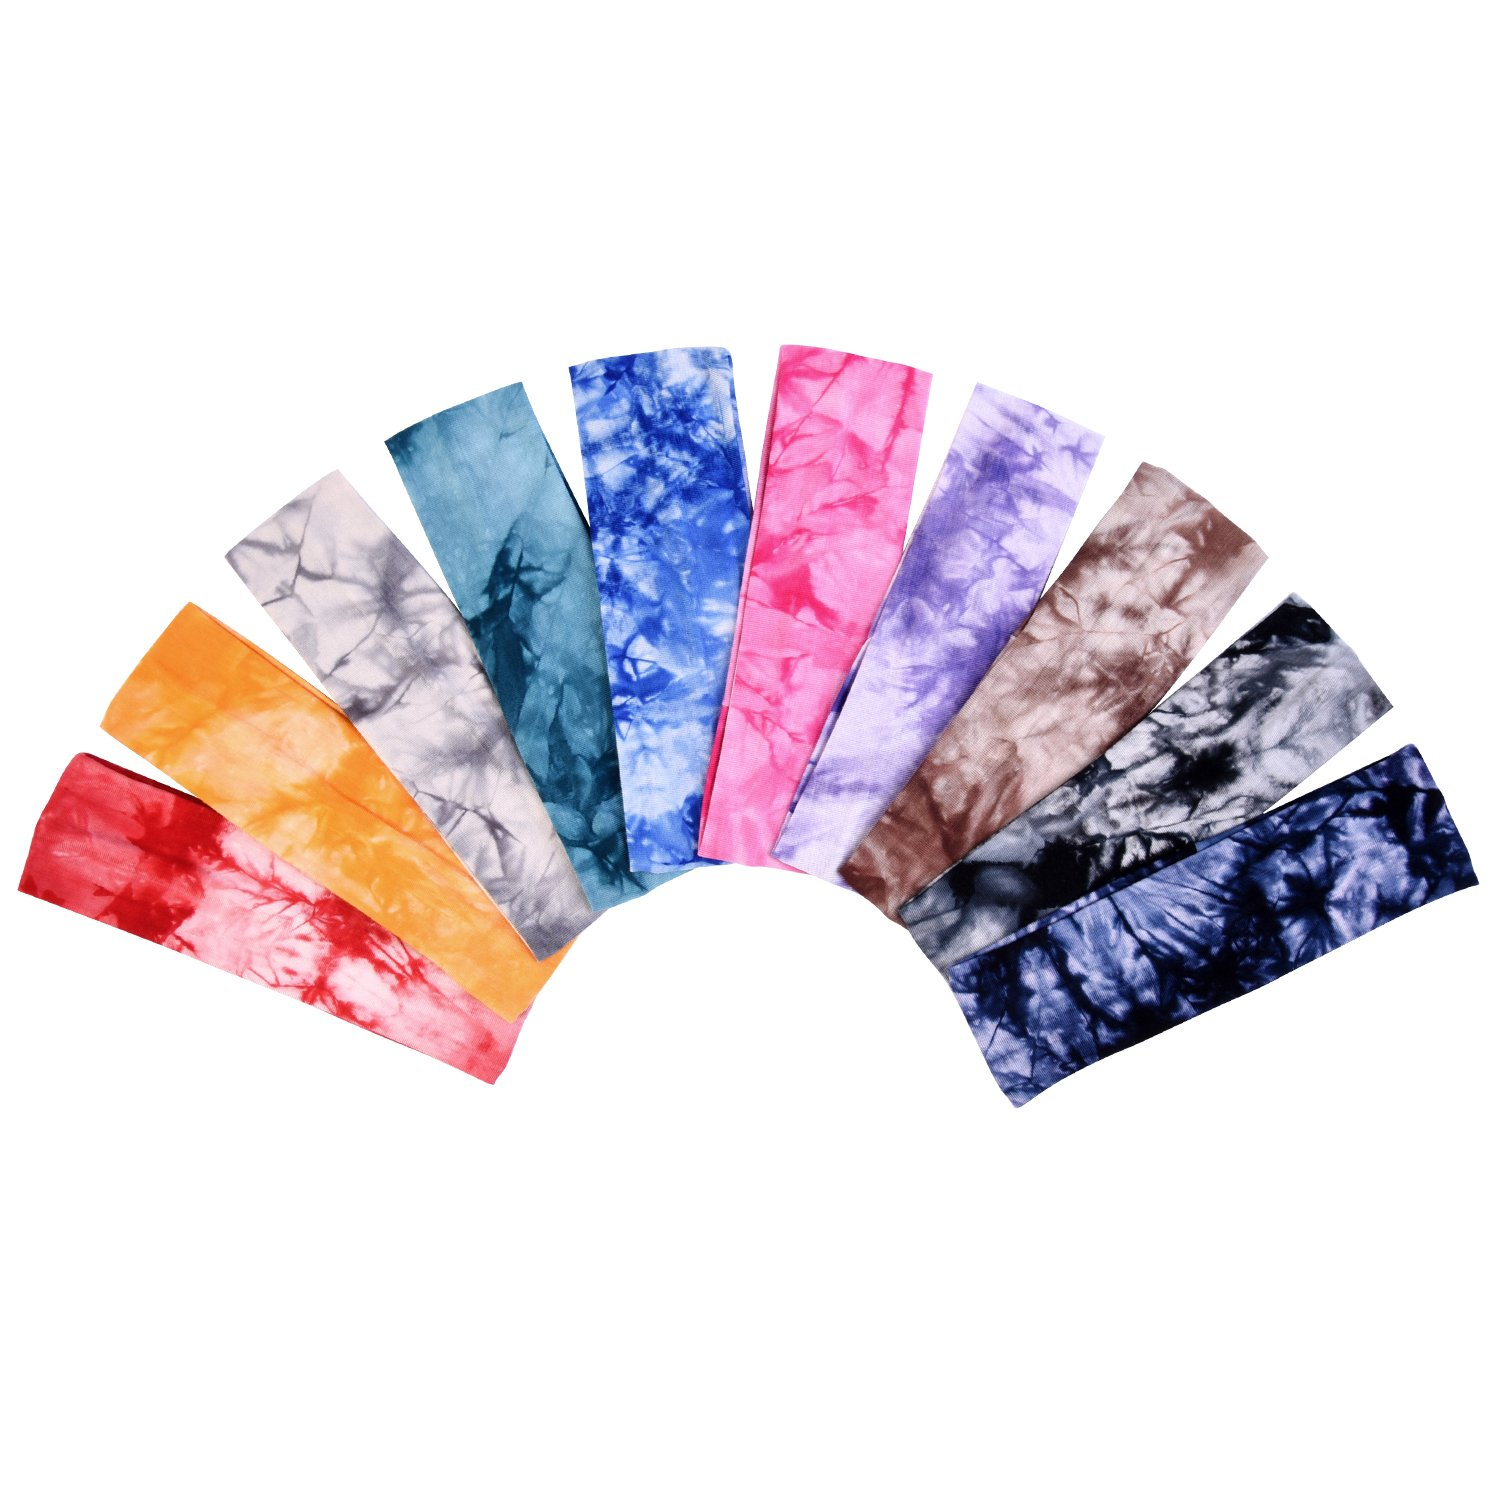 Tie Dye Headbands Cotton Stretch Headbands Elastic Yoga Hairband for Teens Girls Women Adults, Assorted Colors, 10 Pieces (Color Set 1)